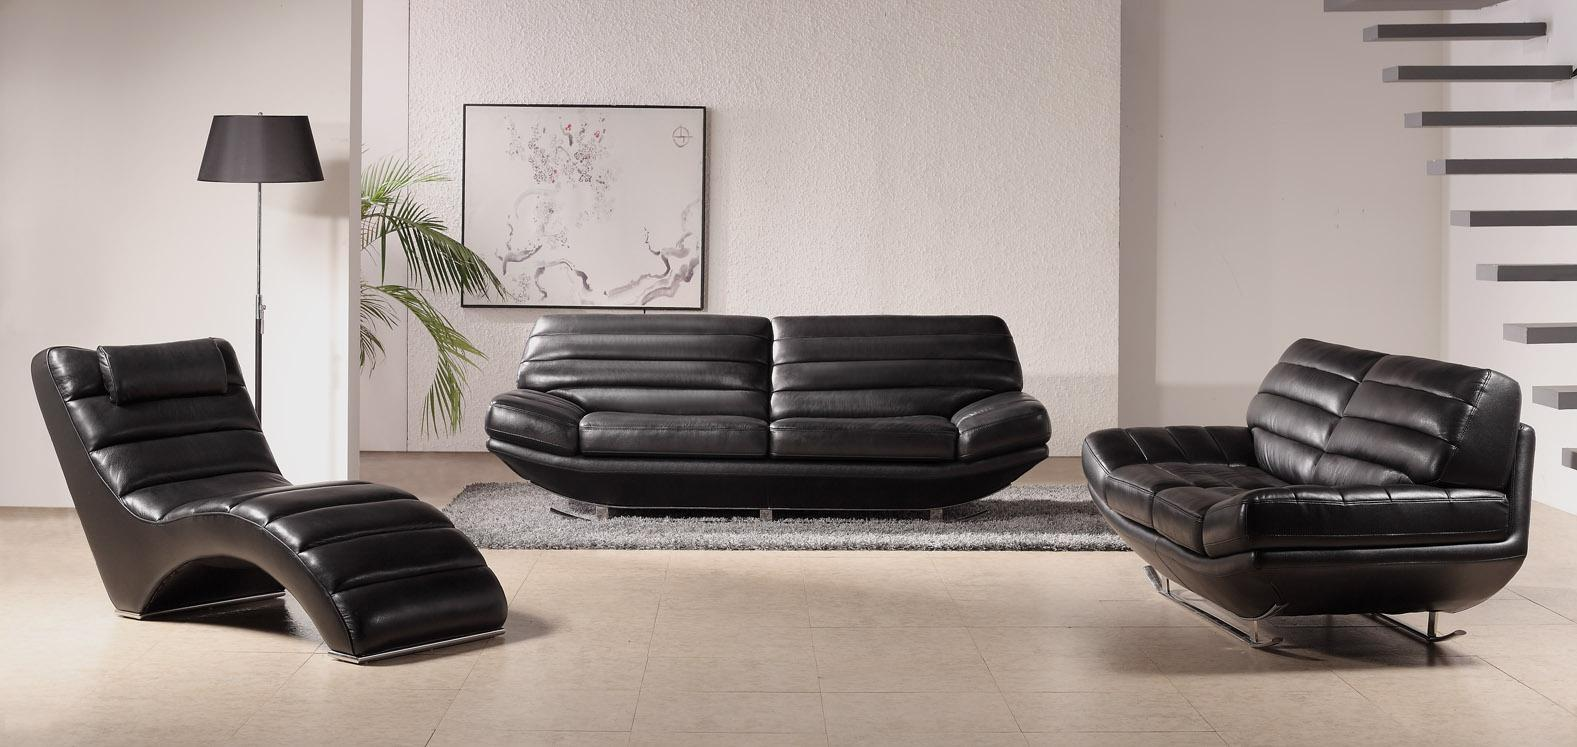 Know about types of couches and sofas my decorative for Modern living room sofa